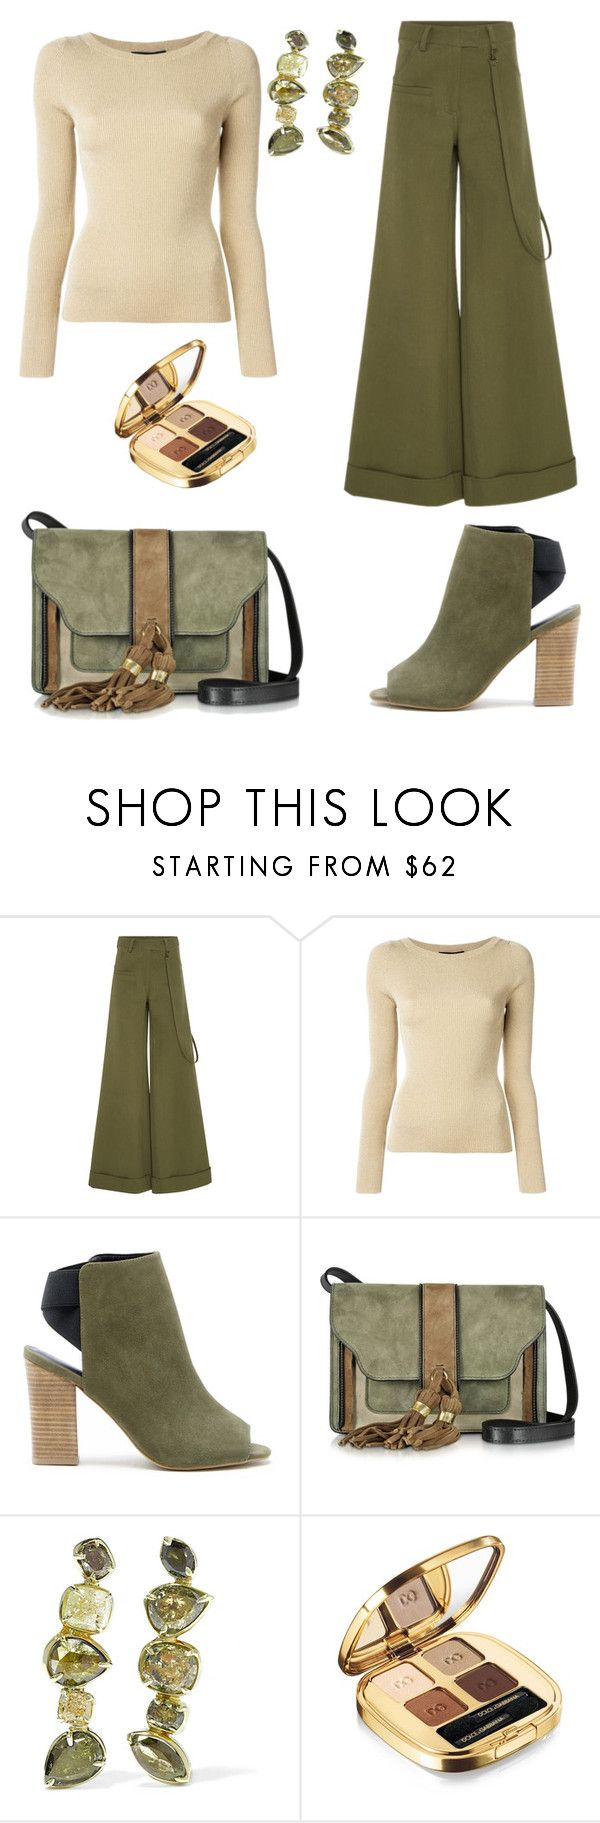 """""""Khaki casual"""" by juliet-elizabeth-george on Polyvore featuring Rosie Assoulin, Dolce&Gabbana, Sole Society, L'Autre Chose, Kimberly McDonald, dolcegabana and PVHint"""